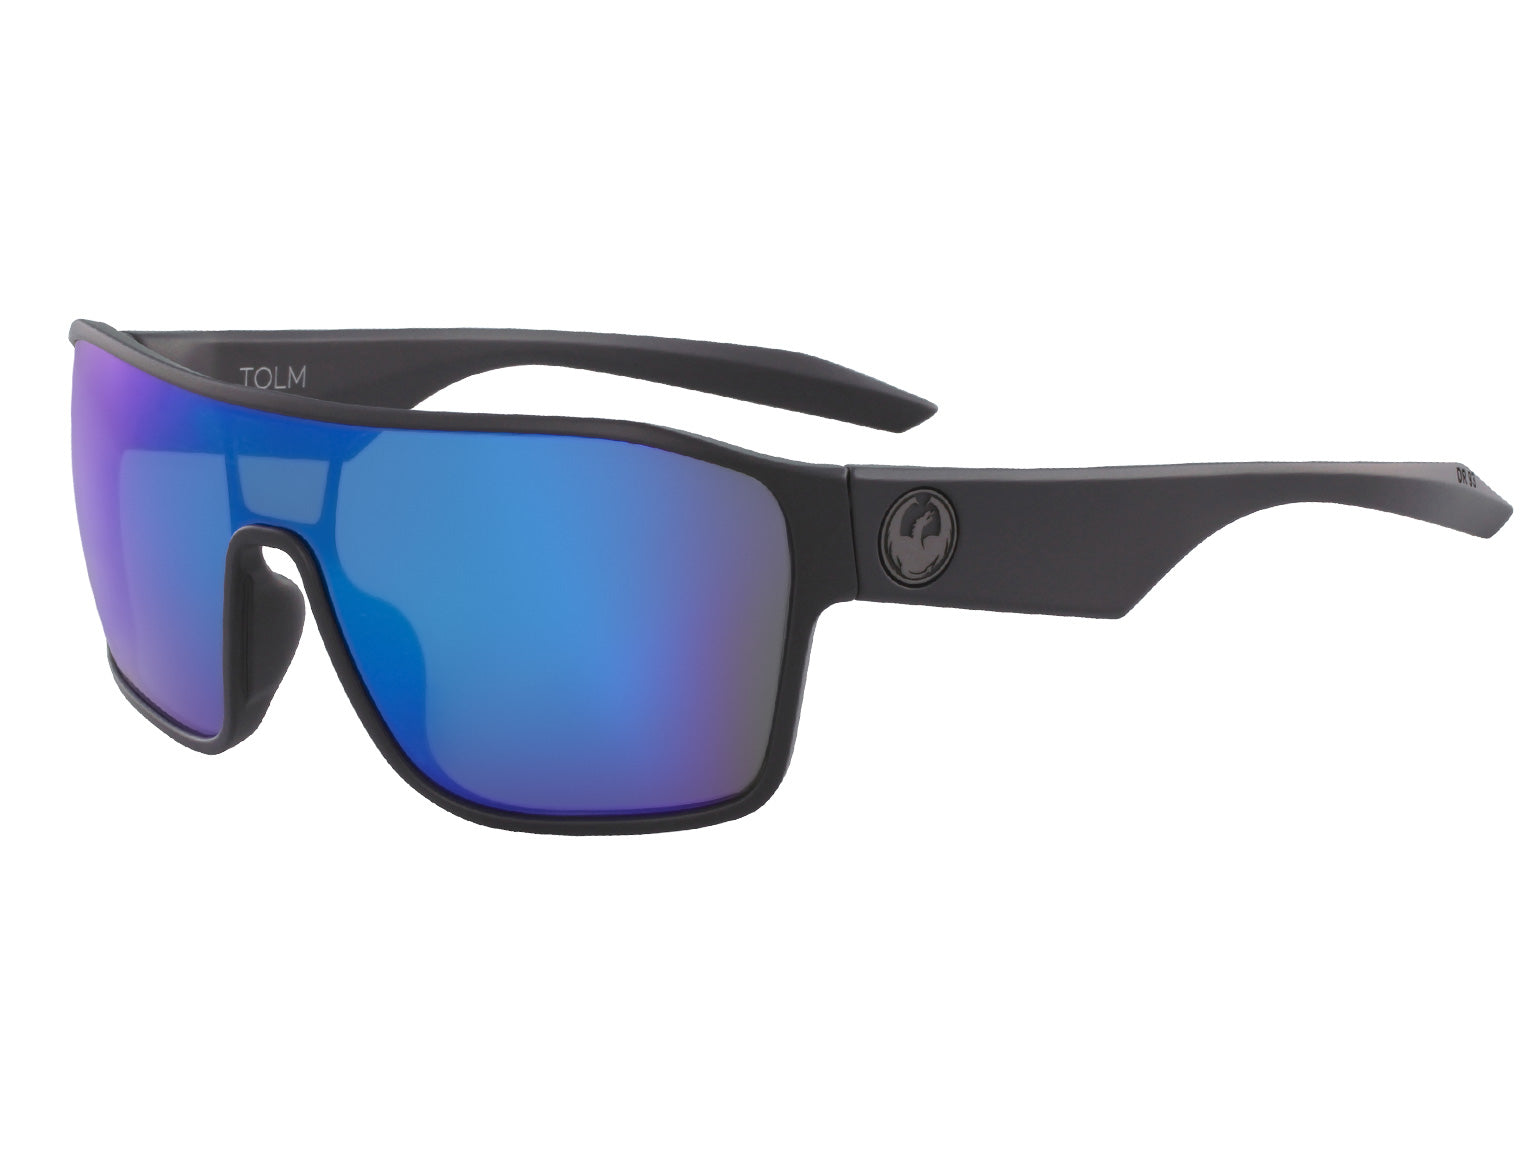 TOLM - Matte Black with Lumalens Blue Ionized Lens